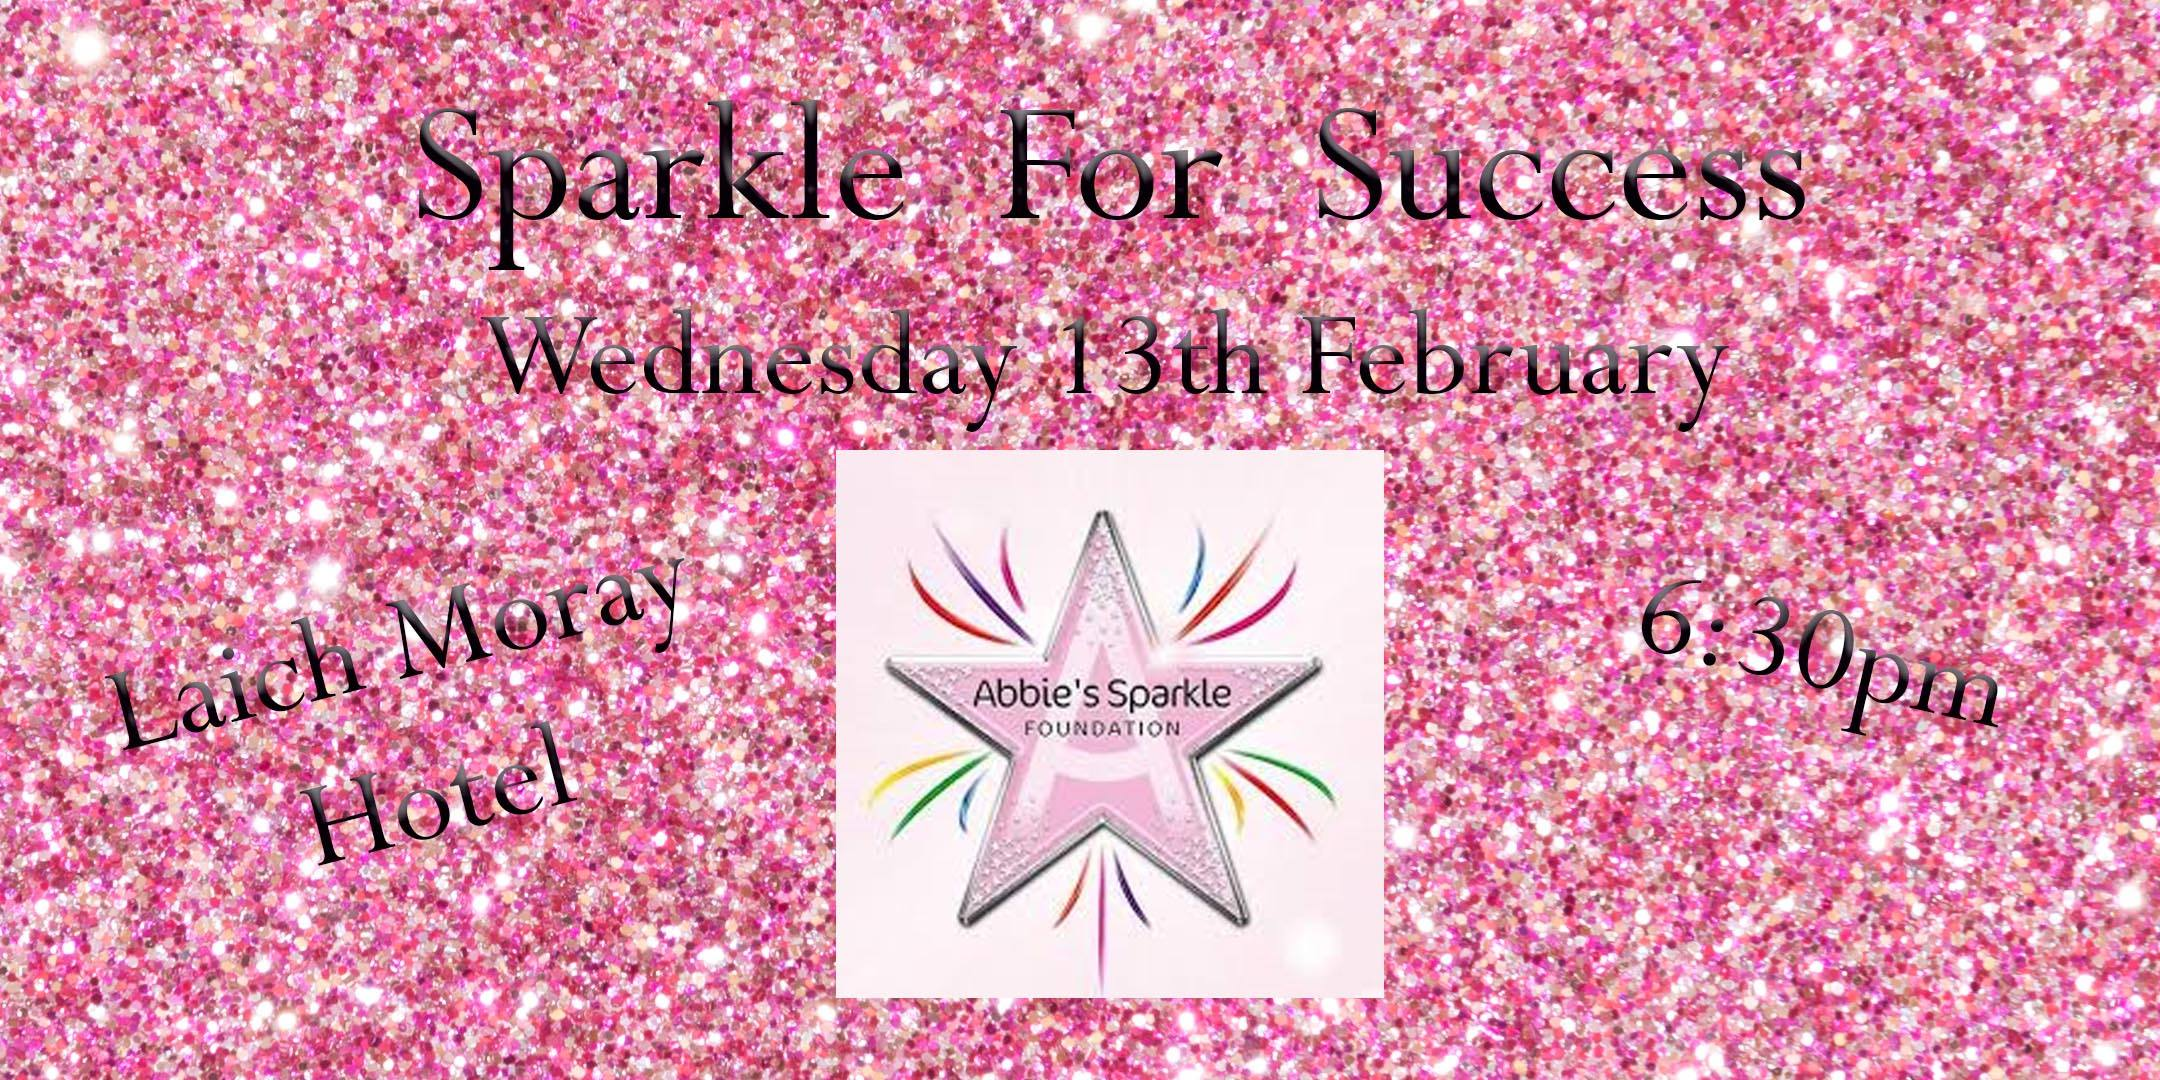 Abbie Sparkle Foundation Event